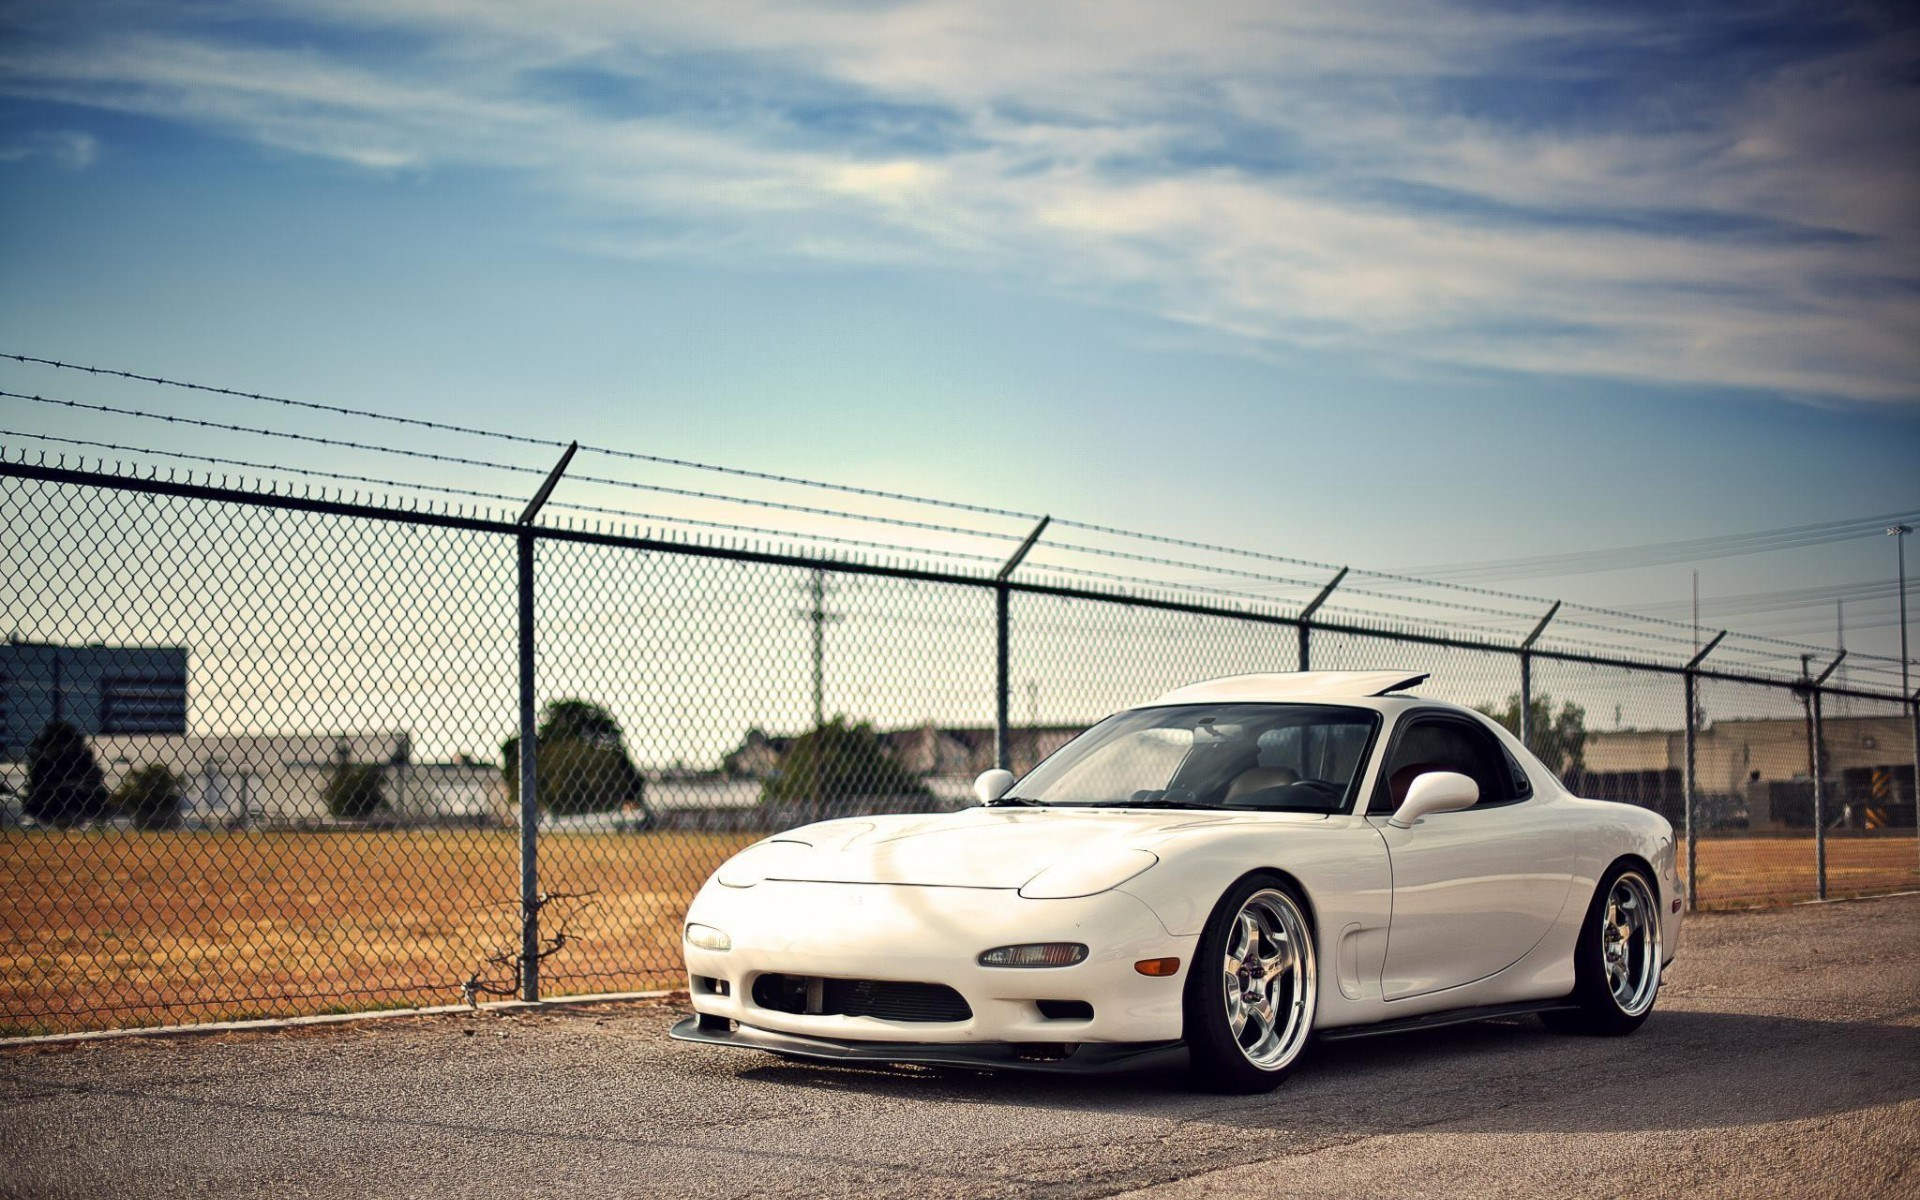 Mazda Rx7 Wallpapers 42391